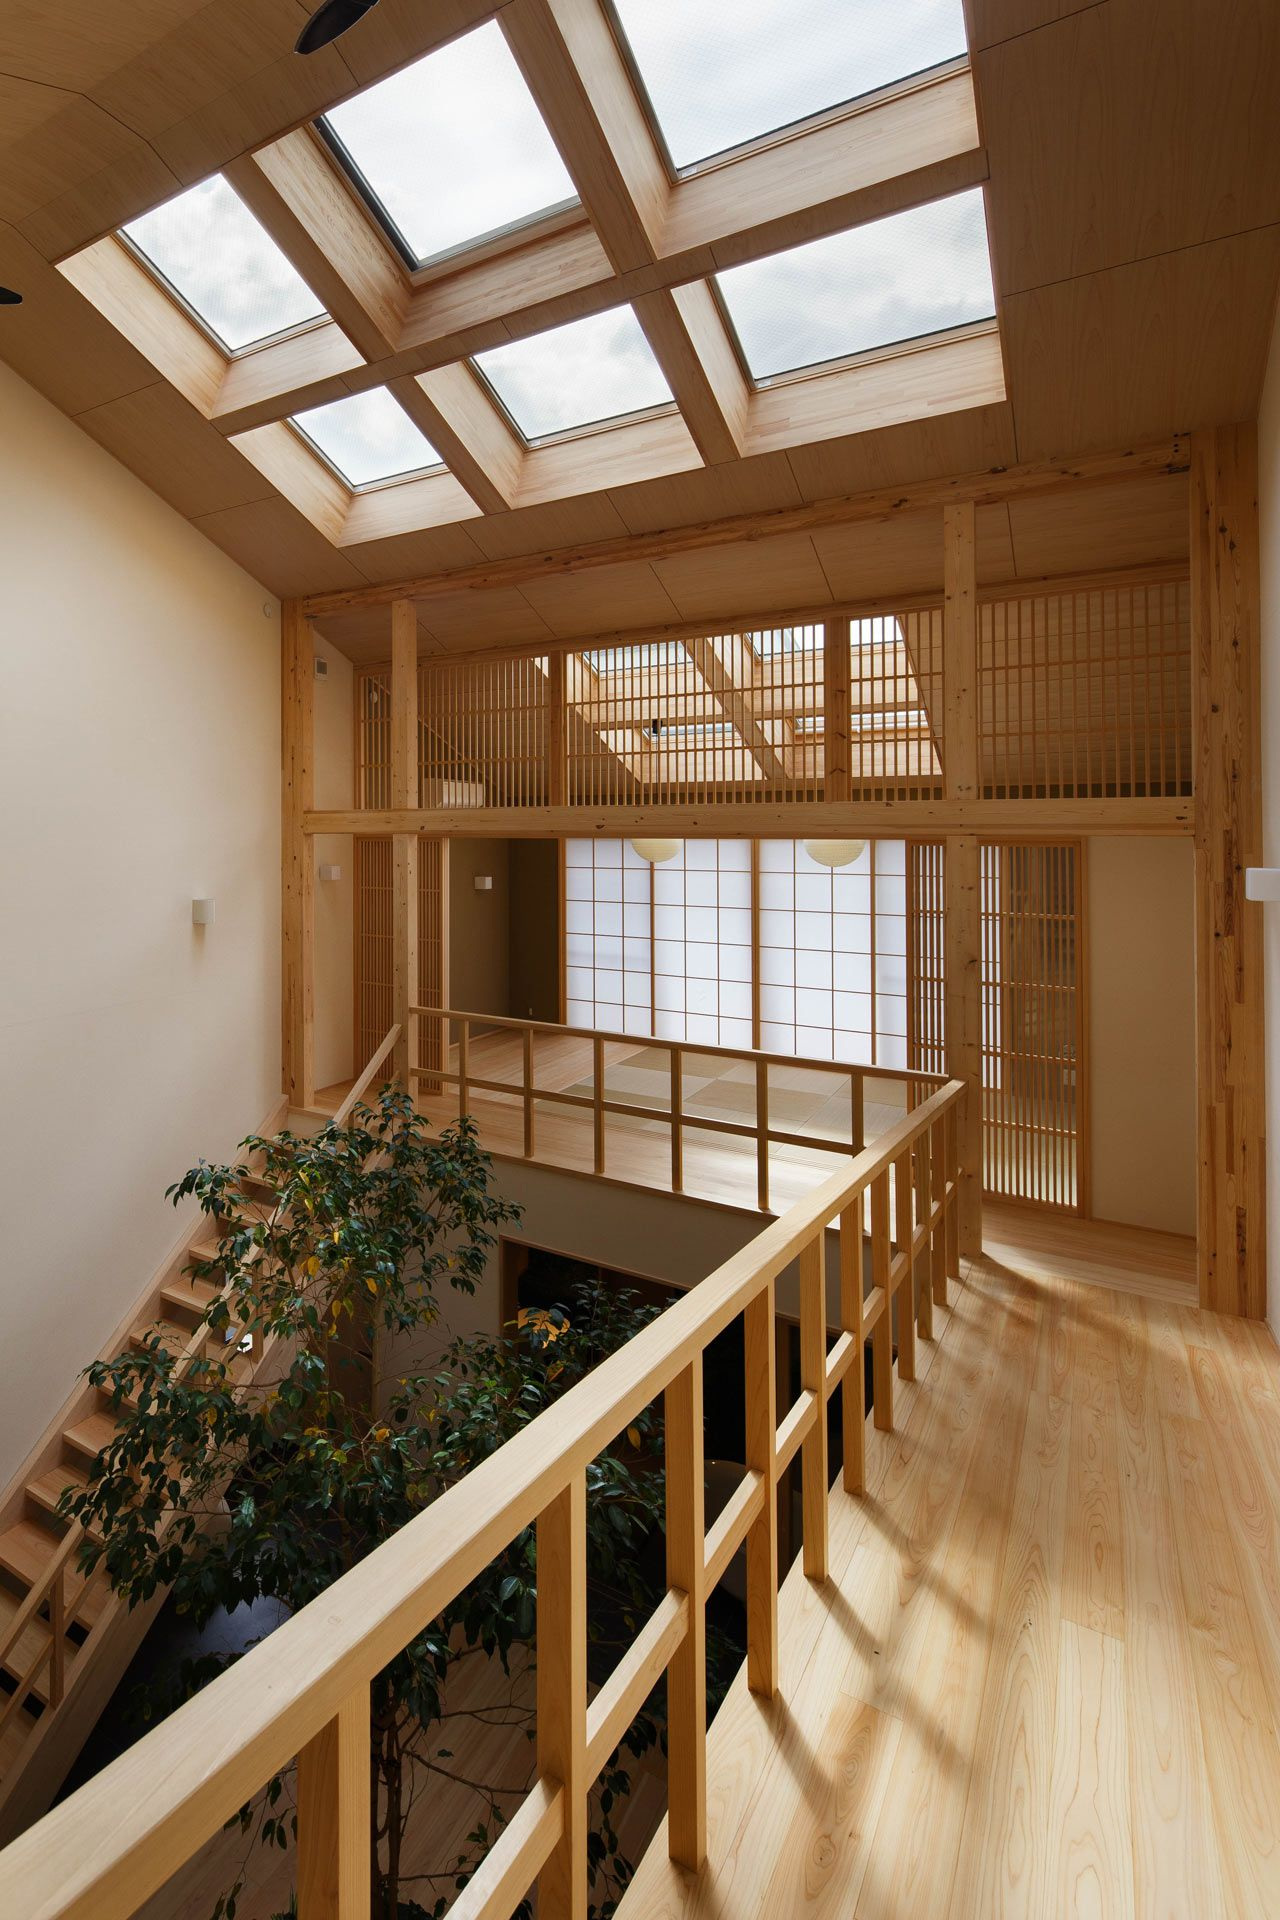 A Family House in Kyoto with a Tree Growing in the Middle - Design Milk